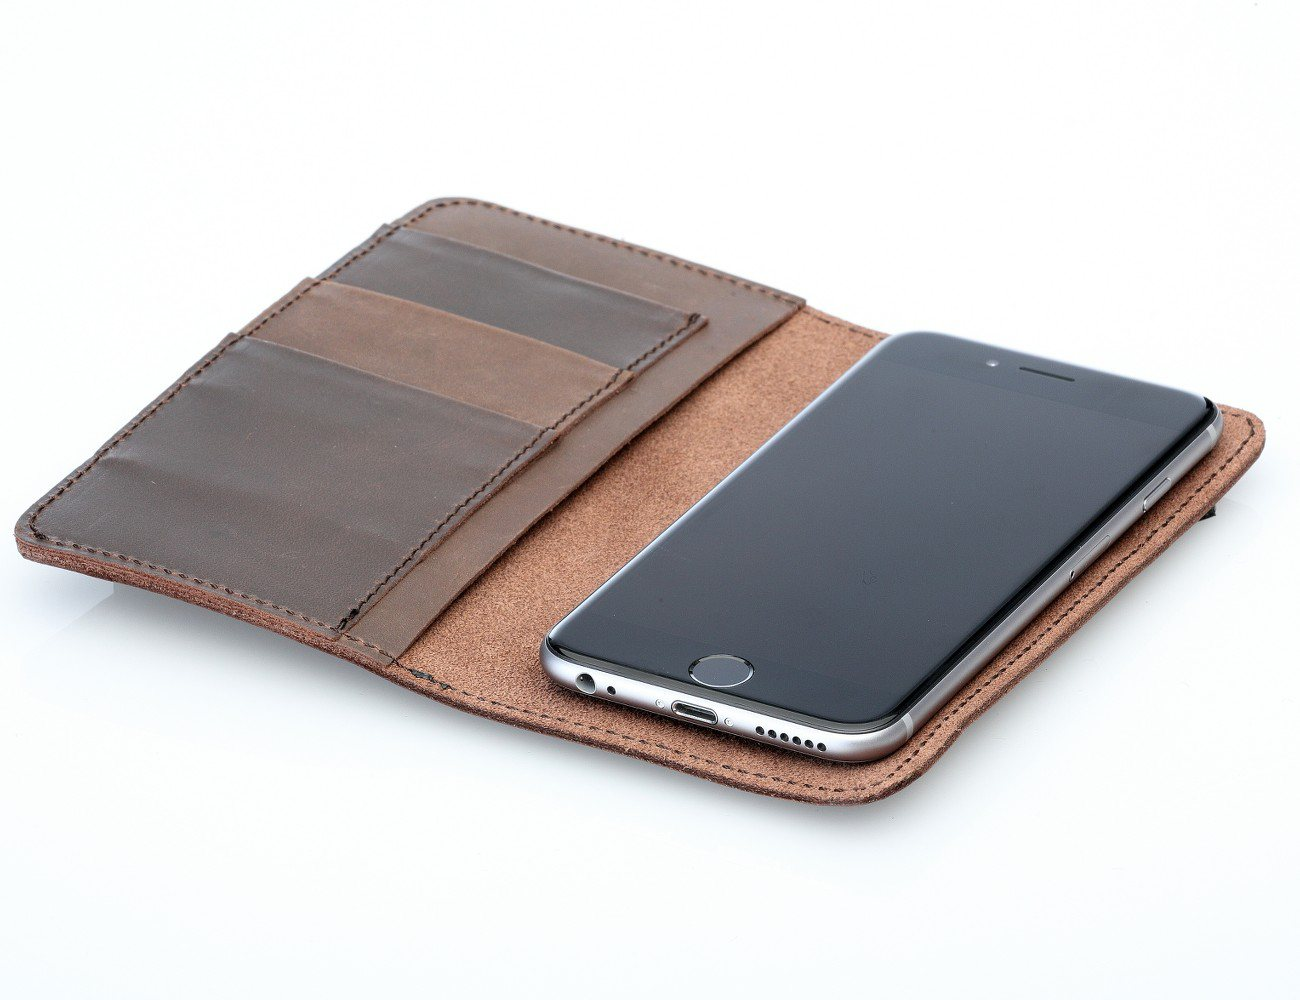 iphone 6 wallet g iphone 6 6s and wallet 187 gadget flow 11444